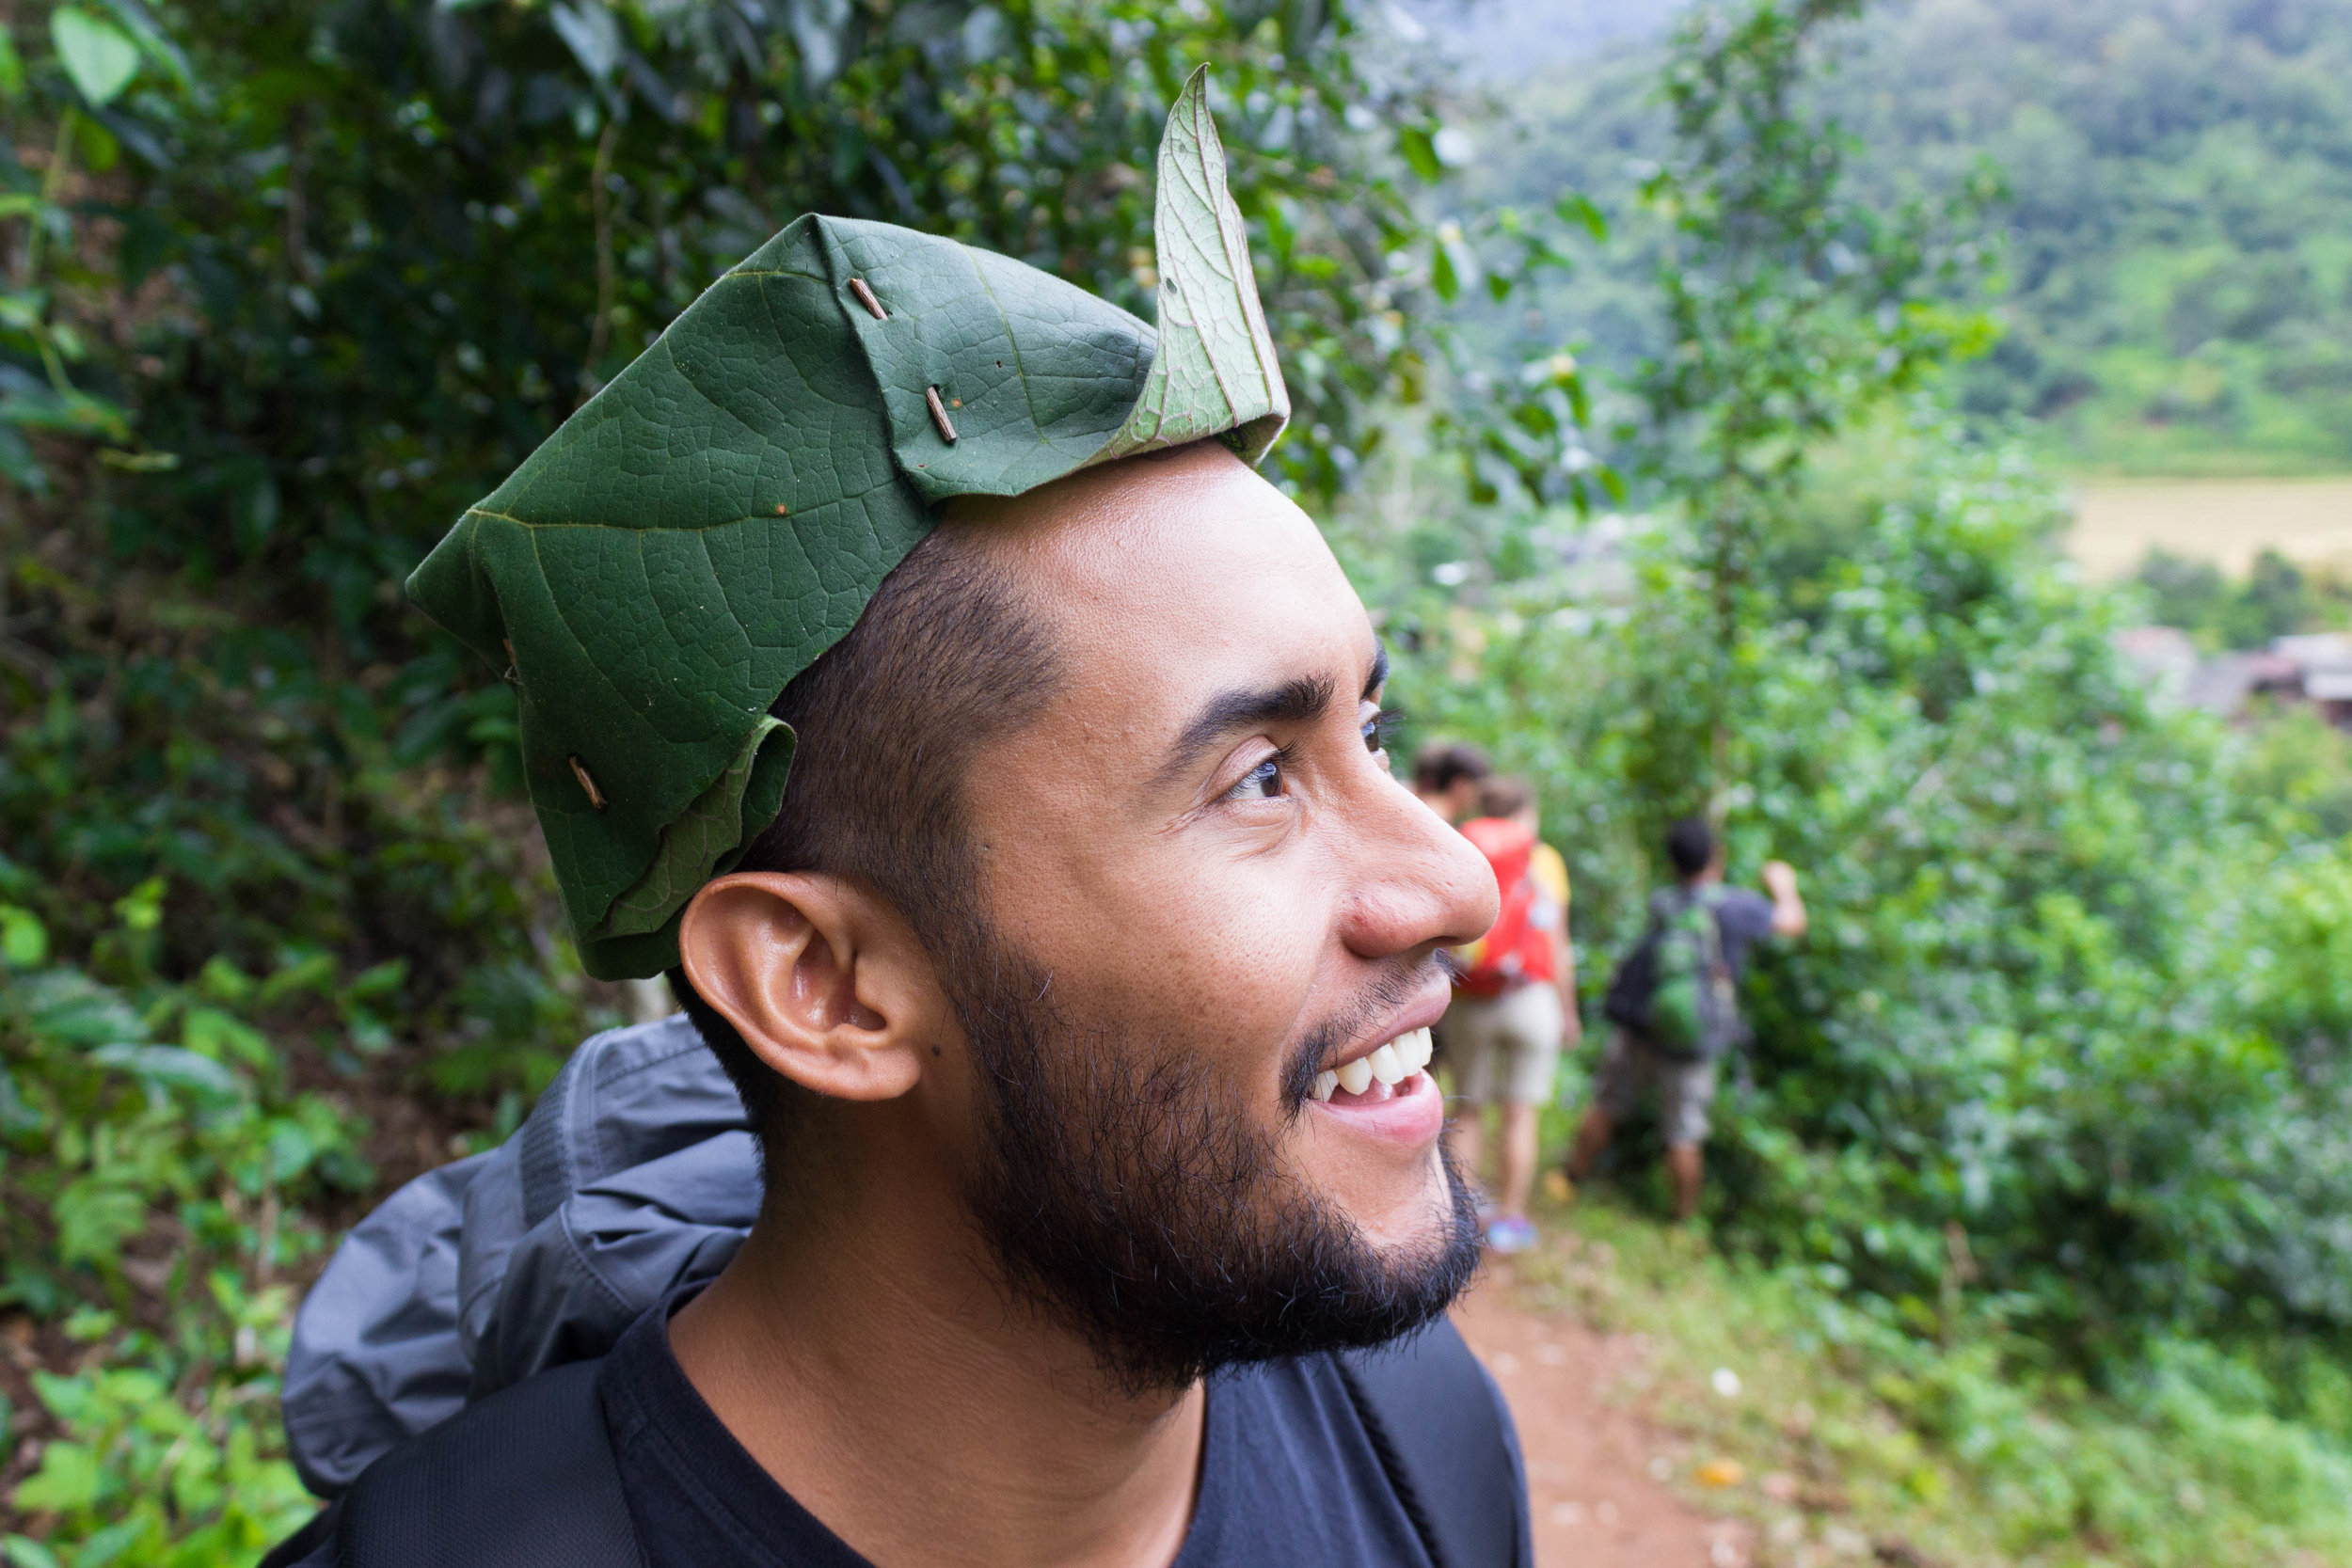 A leaf hat that Date made Luis!